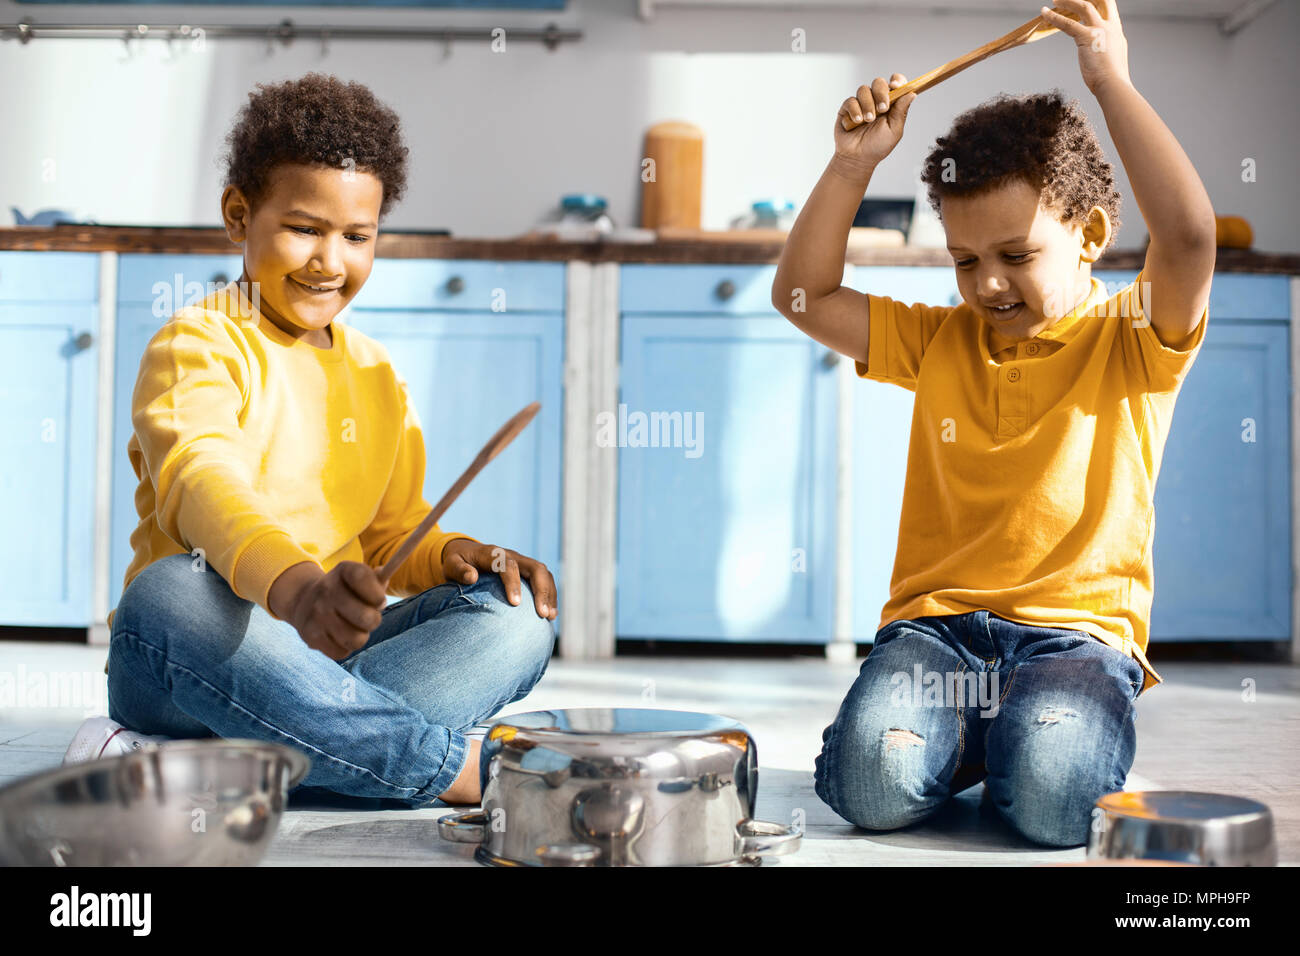 Cute little boys creating noise by drumming on saucepans Stock Photo